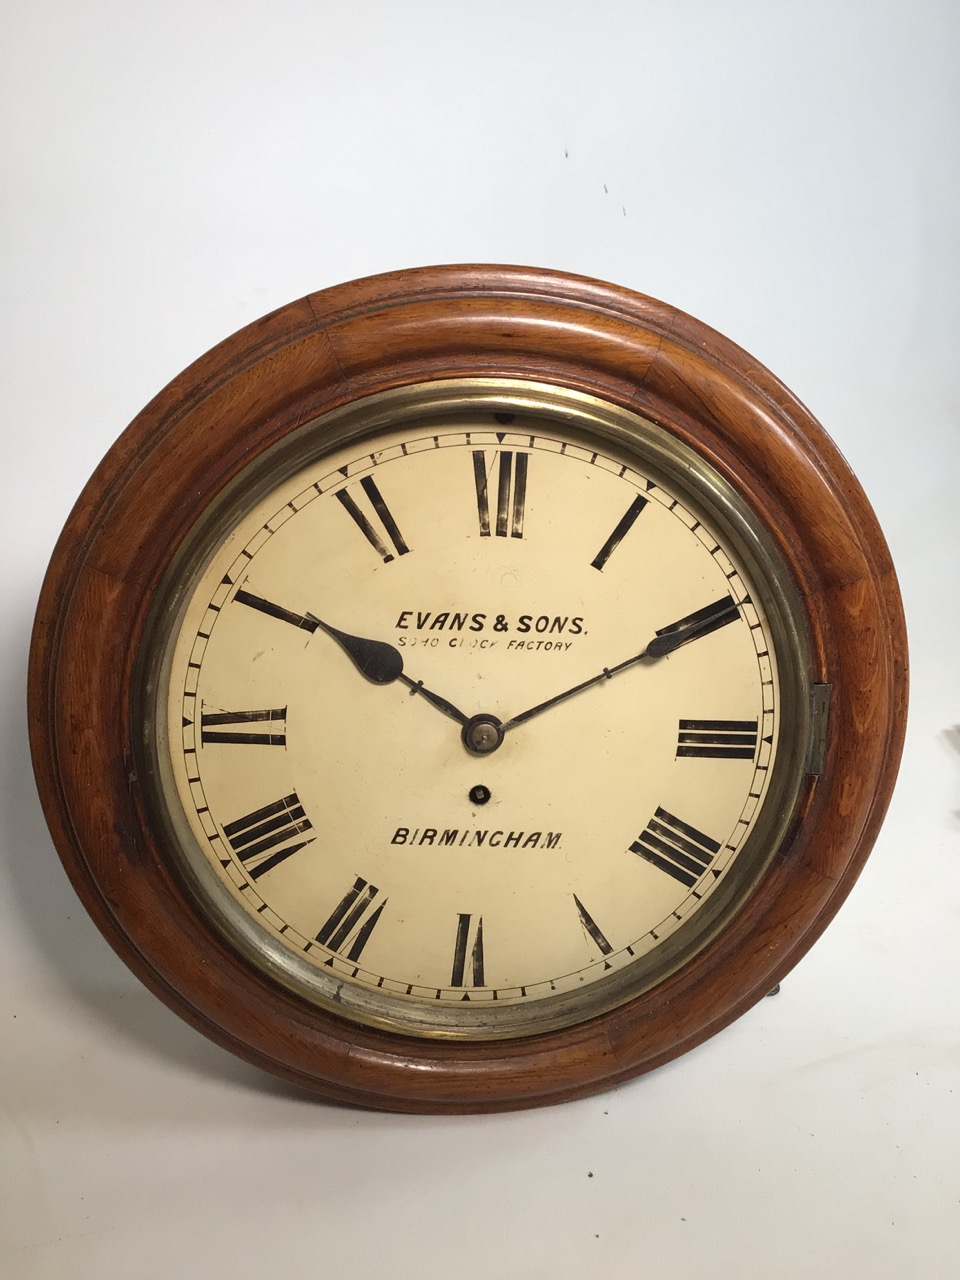 An Evans and sons Birmingham circular Fussee wall clock. Soho clock factory with oak case. Missing